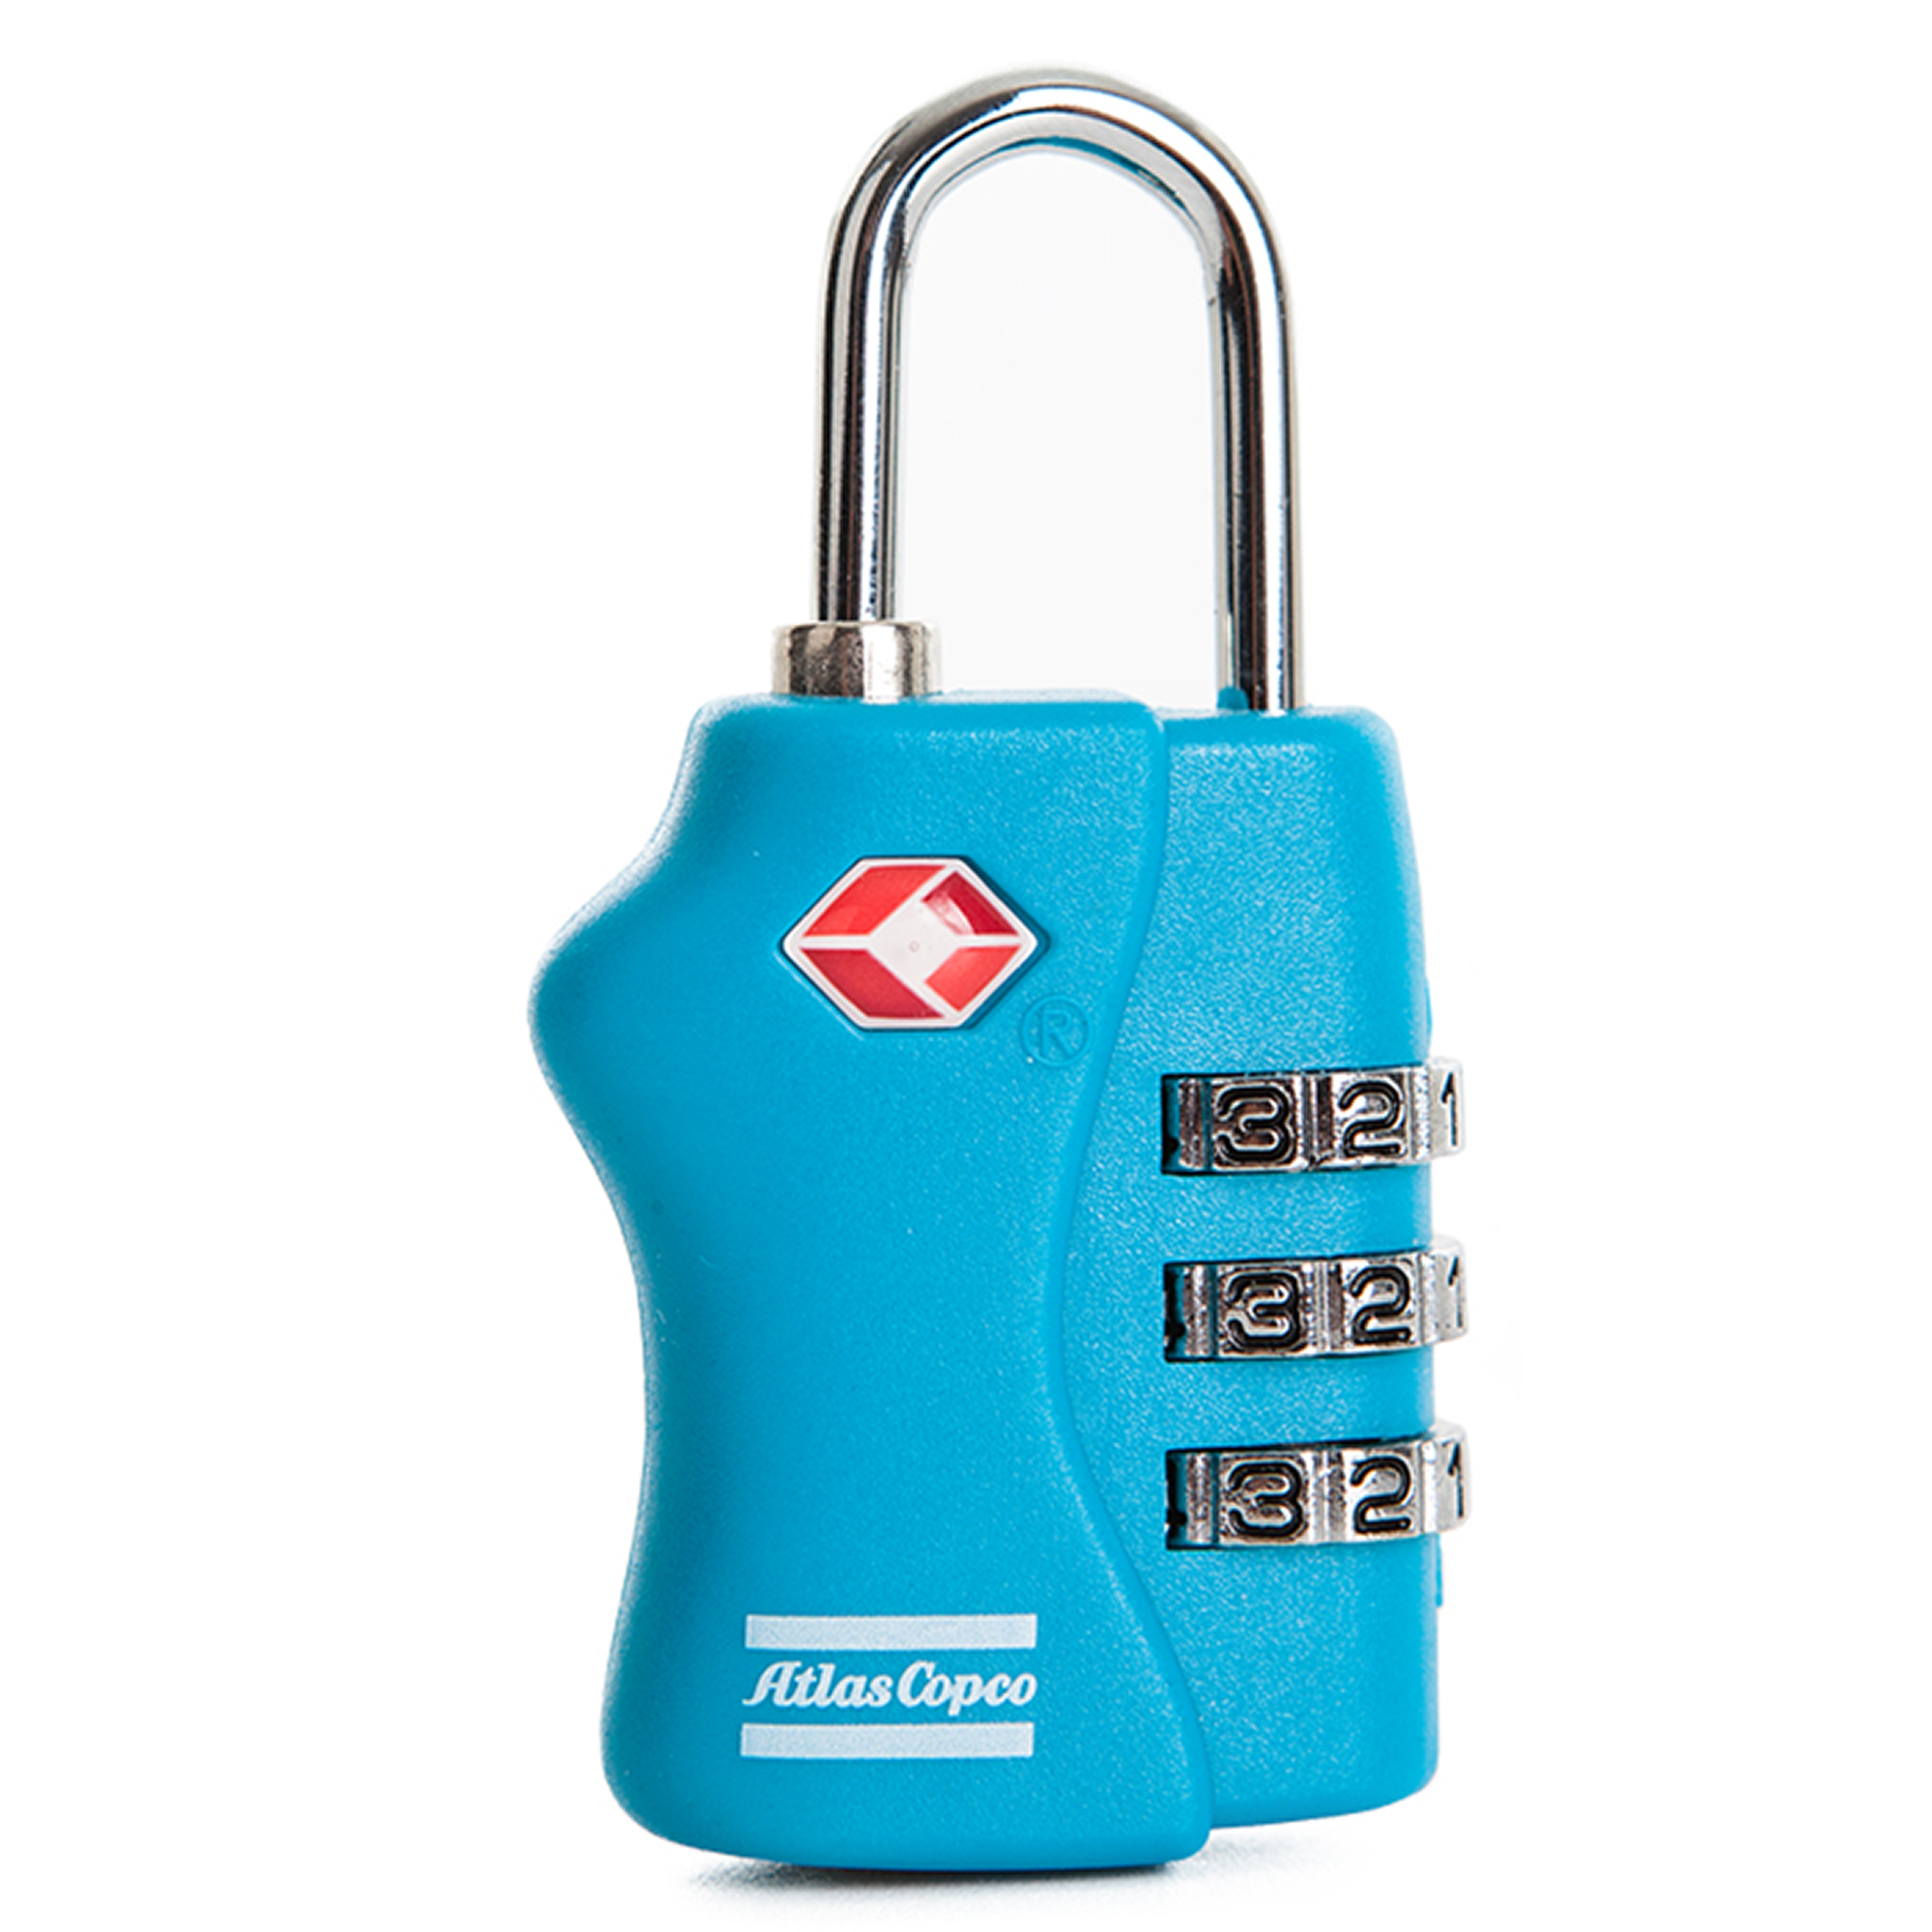 An Atlas Copco branded (TSA) Travel Sentry Approved combination lock to keep the contents of your luggage safe*. Use it whenever you travel over borders by air or other means. It is high-quality and approved by airport security authorities around the world. *A Travel Sentry Approved (TSA) padlock is one that is approved for use by airport security authorities around the world. If security officials at the airport wish to open and inspect your luggage, they can unlock your baggage and re-lock when the inspection is complete.